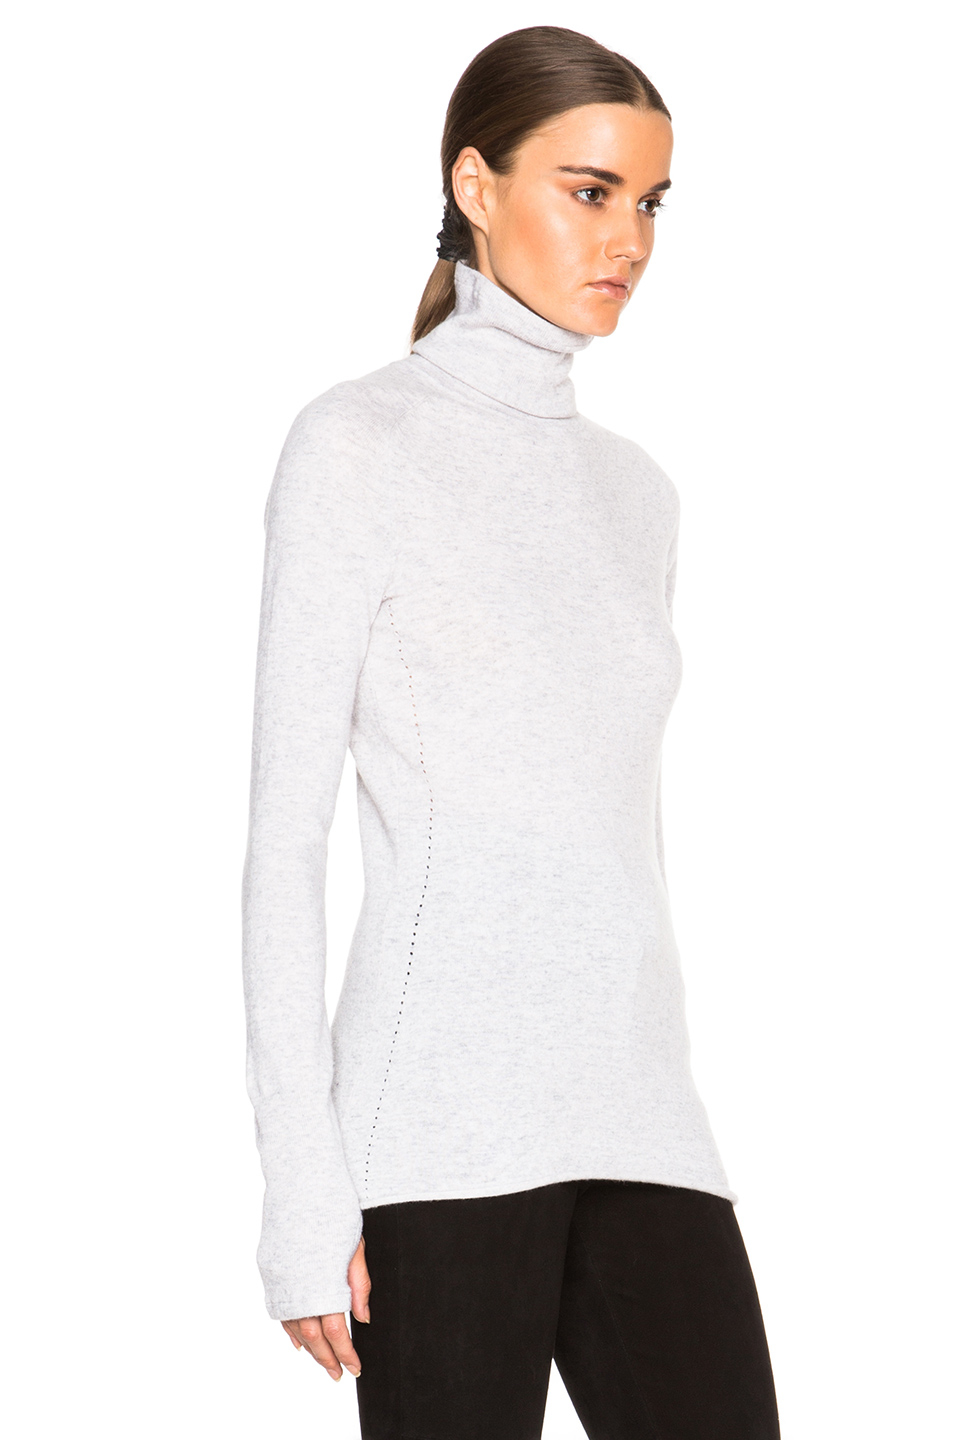 Allen Allen Womens Thermal Sweater Long Sleeve Thumbhole. by Allen Company. $ $ 43 00 Prime. FREE Shipping on eligible orders. Some sizes/colors are Prime eligible. 3 out of 5 stars 1. Soybu Women's Lena Drape-Front Wrap Cardigan Sweater. by Soybu. $ $ 74 00 Prime.